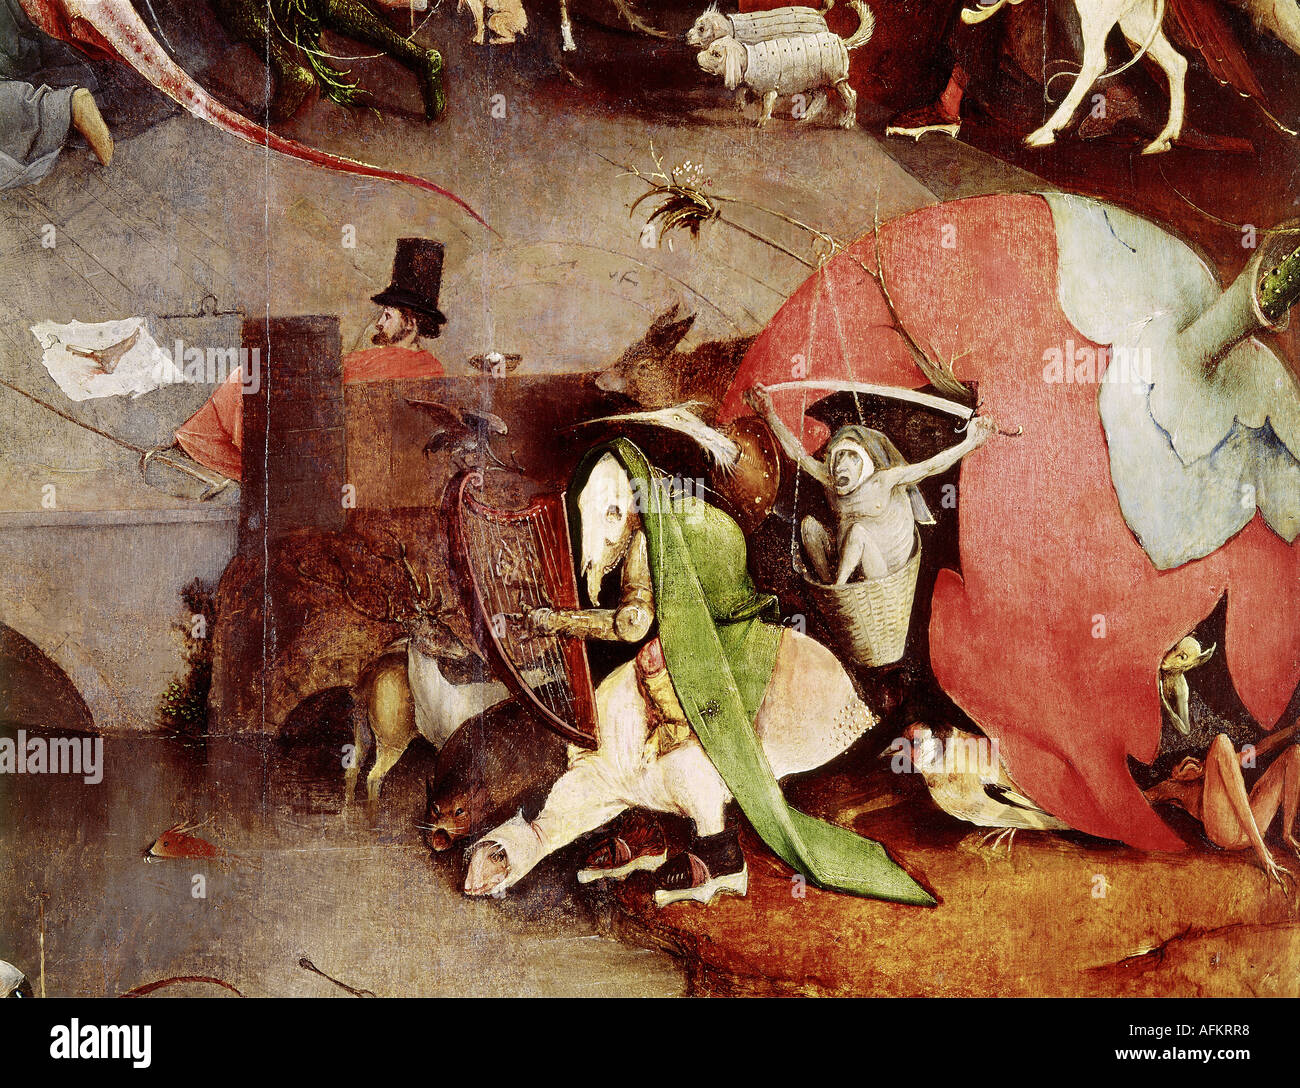 """""""fine arts, Bosch, Hieronymus, (circa 1450 - 1516), painting, """"the temptation of Saint Anthony"""", central panel, Stock Photo"""